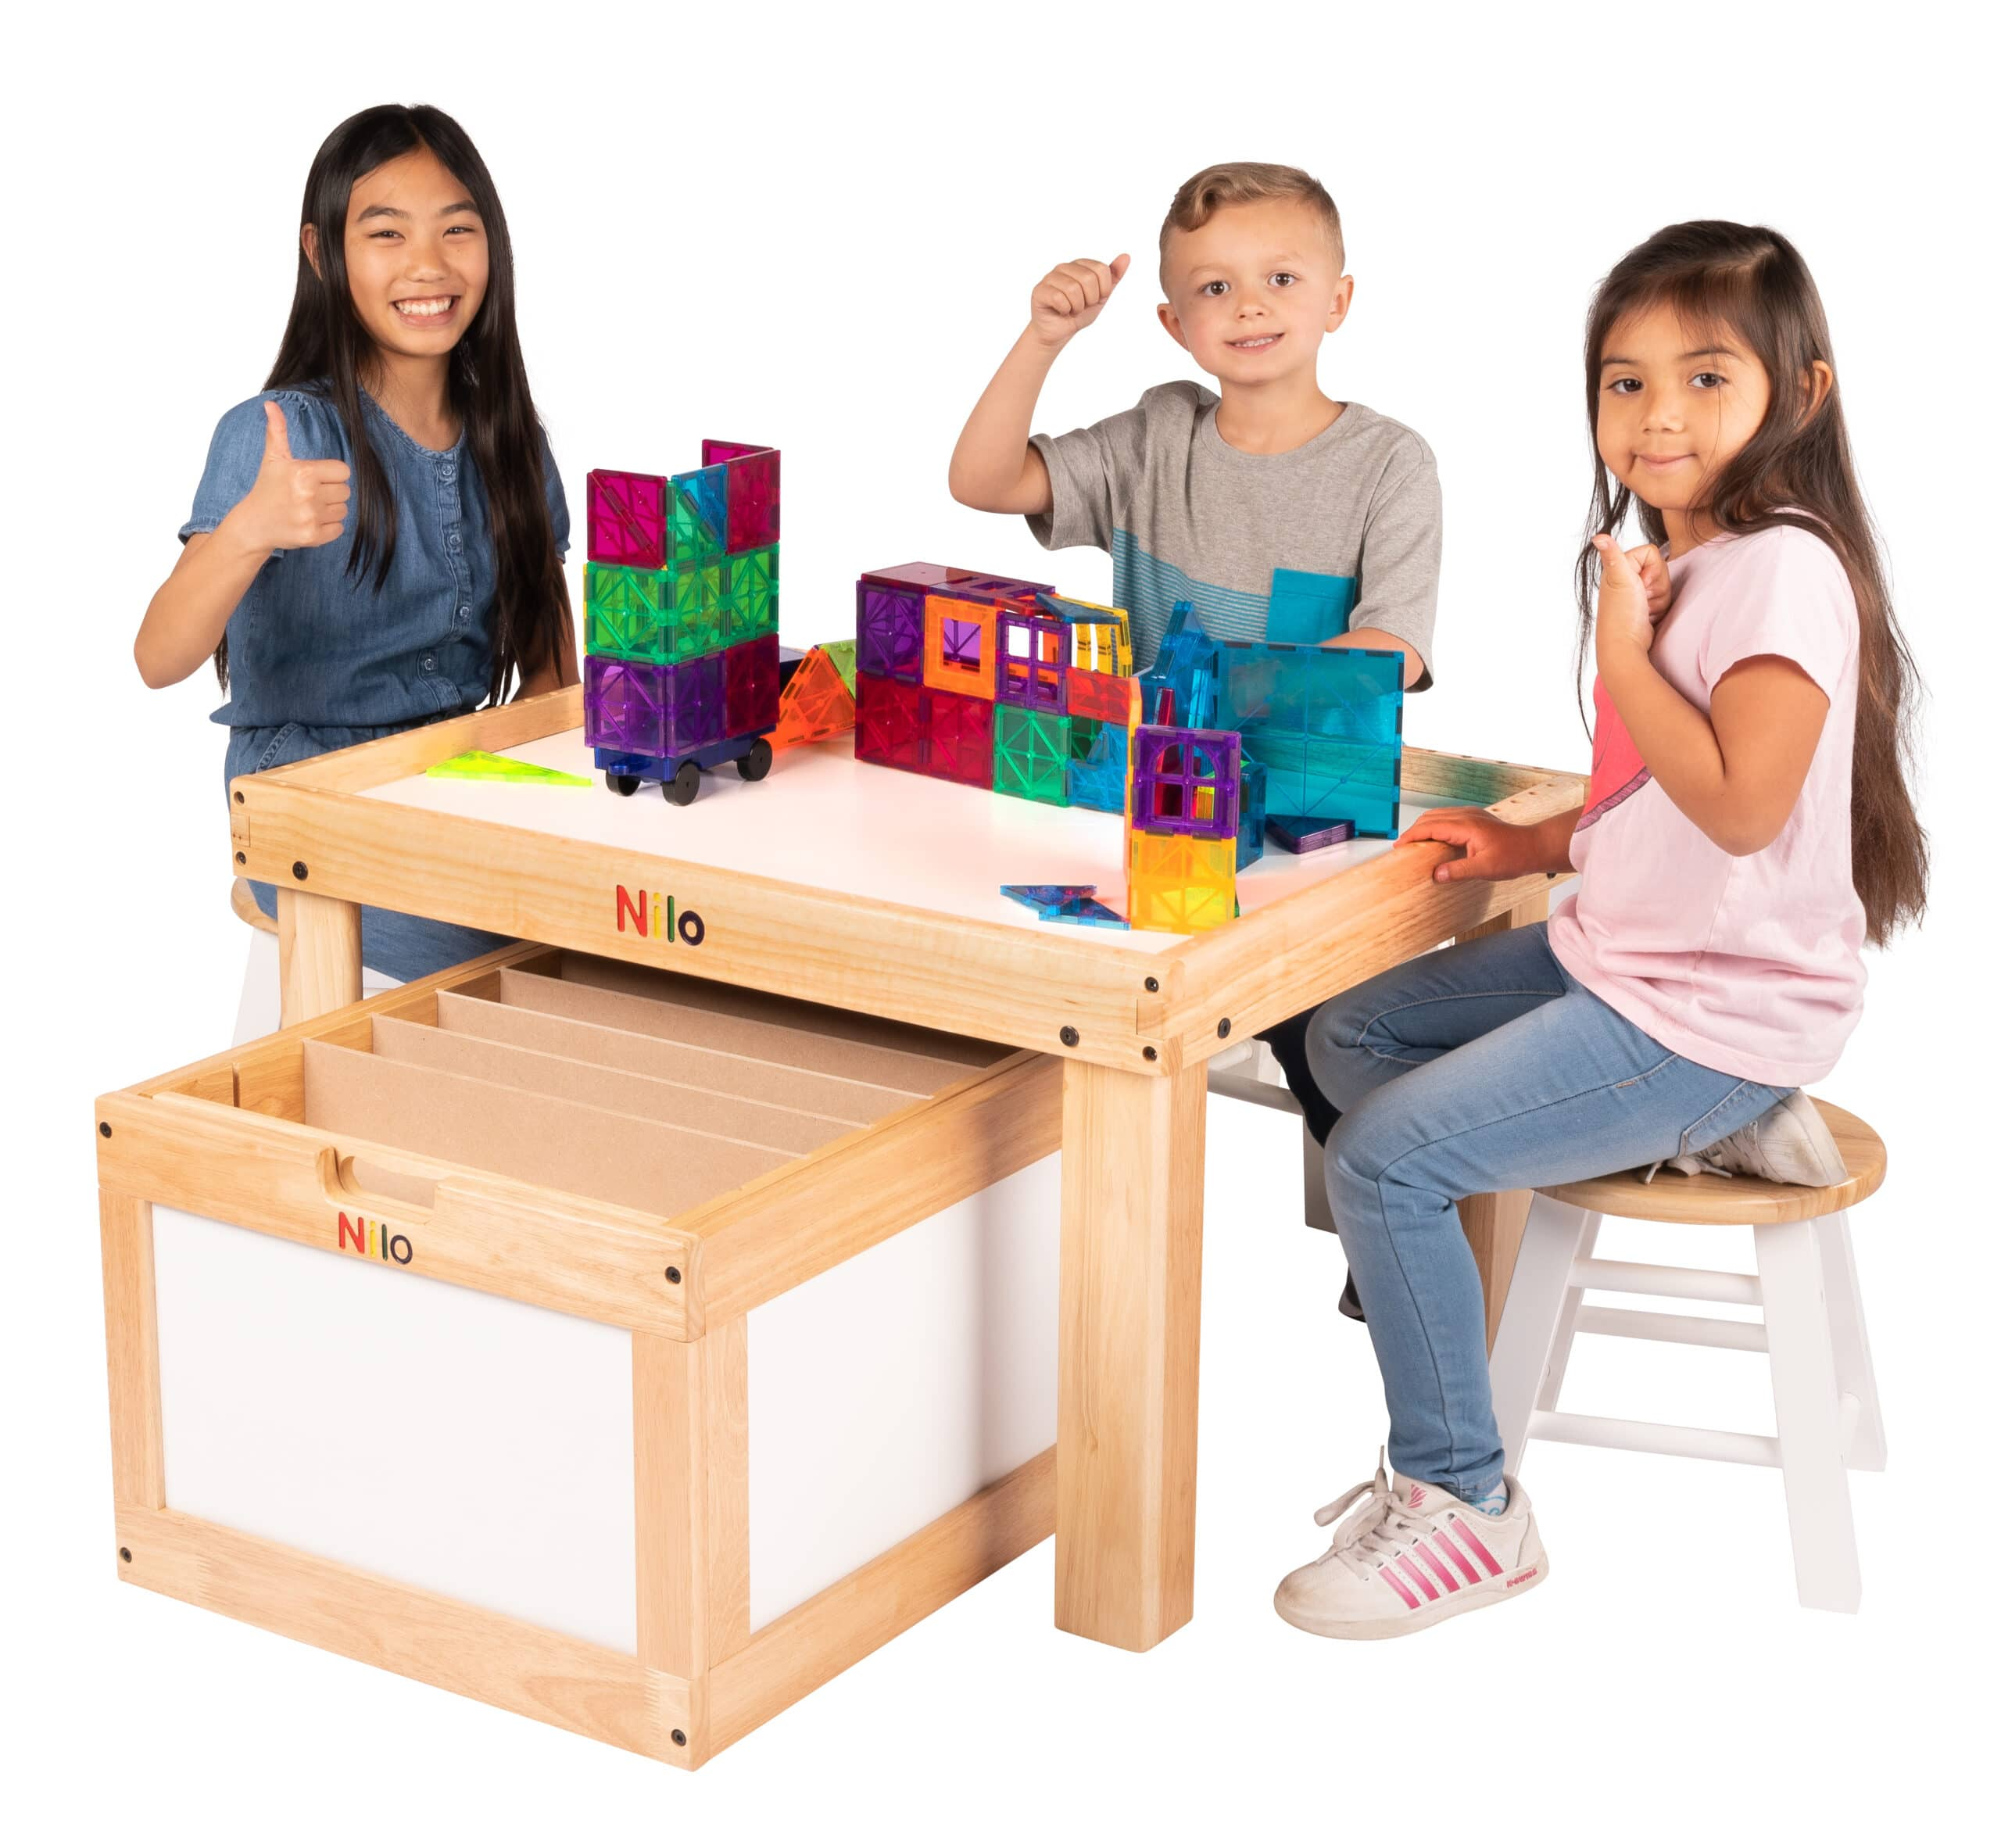 Nilo Lego Table